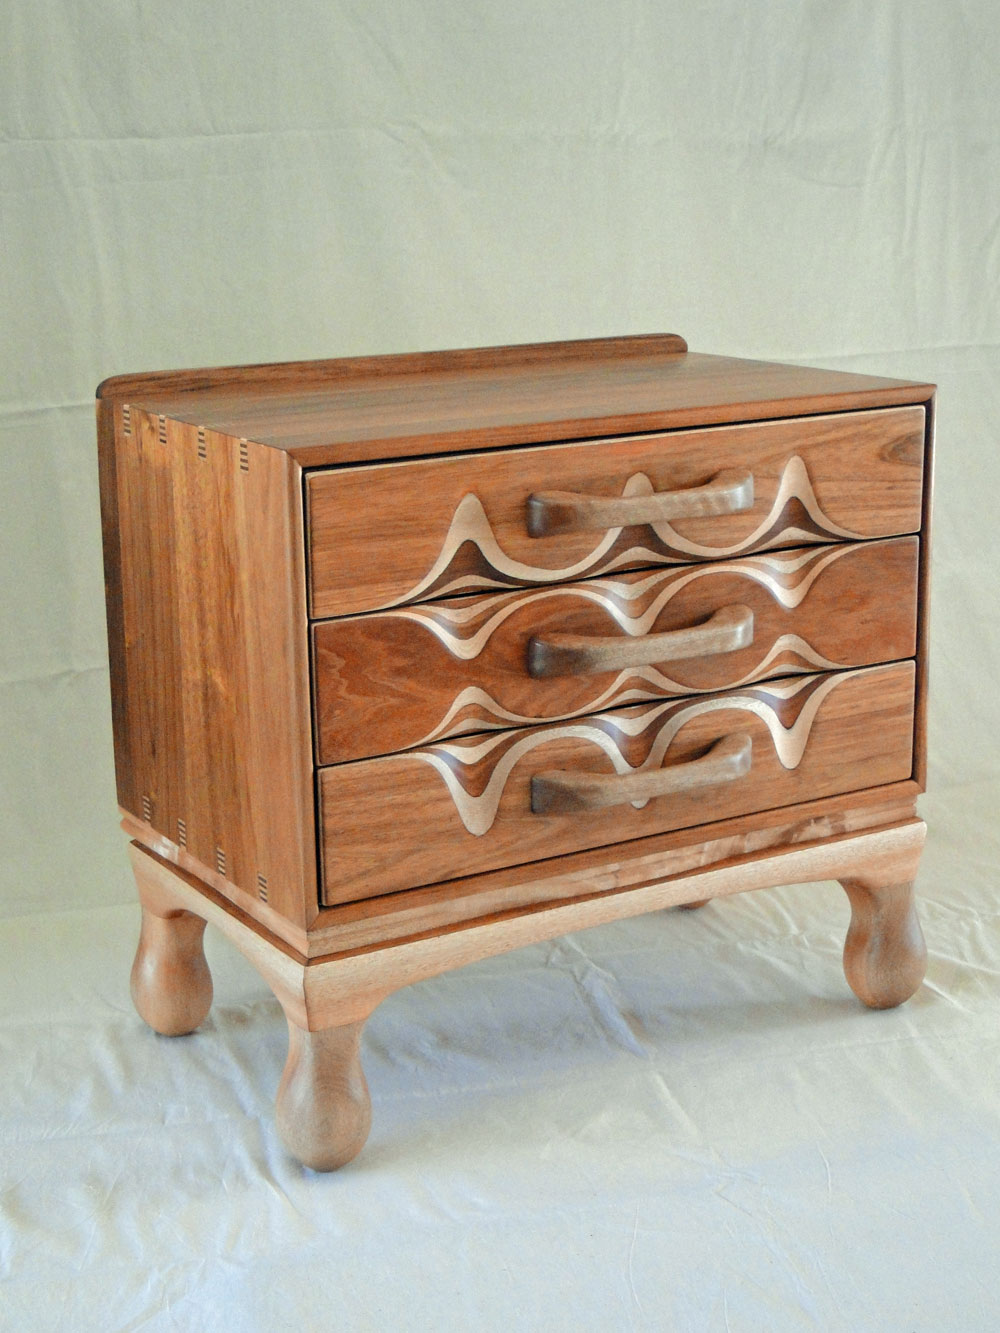 Blackwood drawers